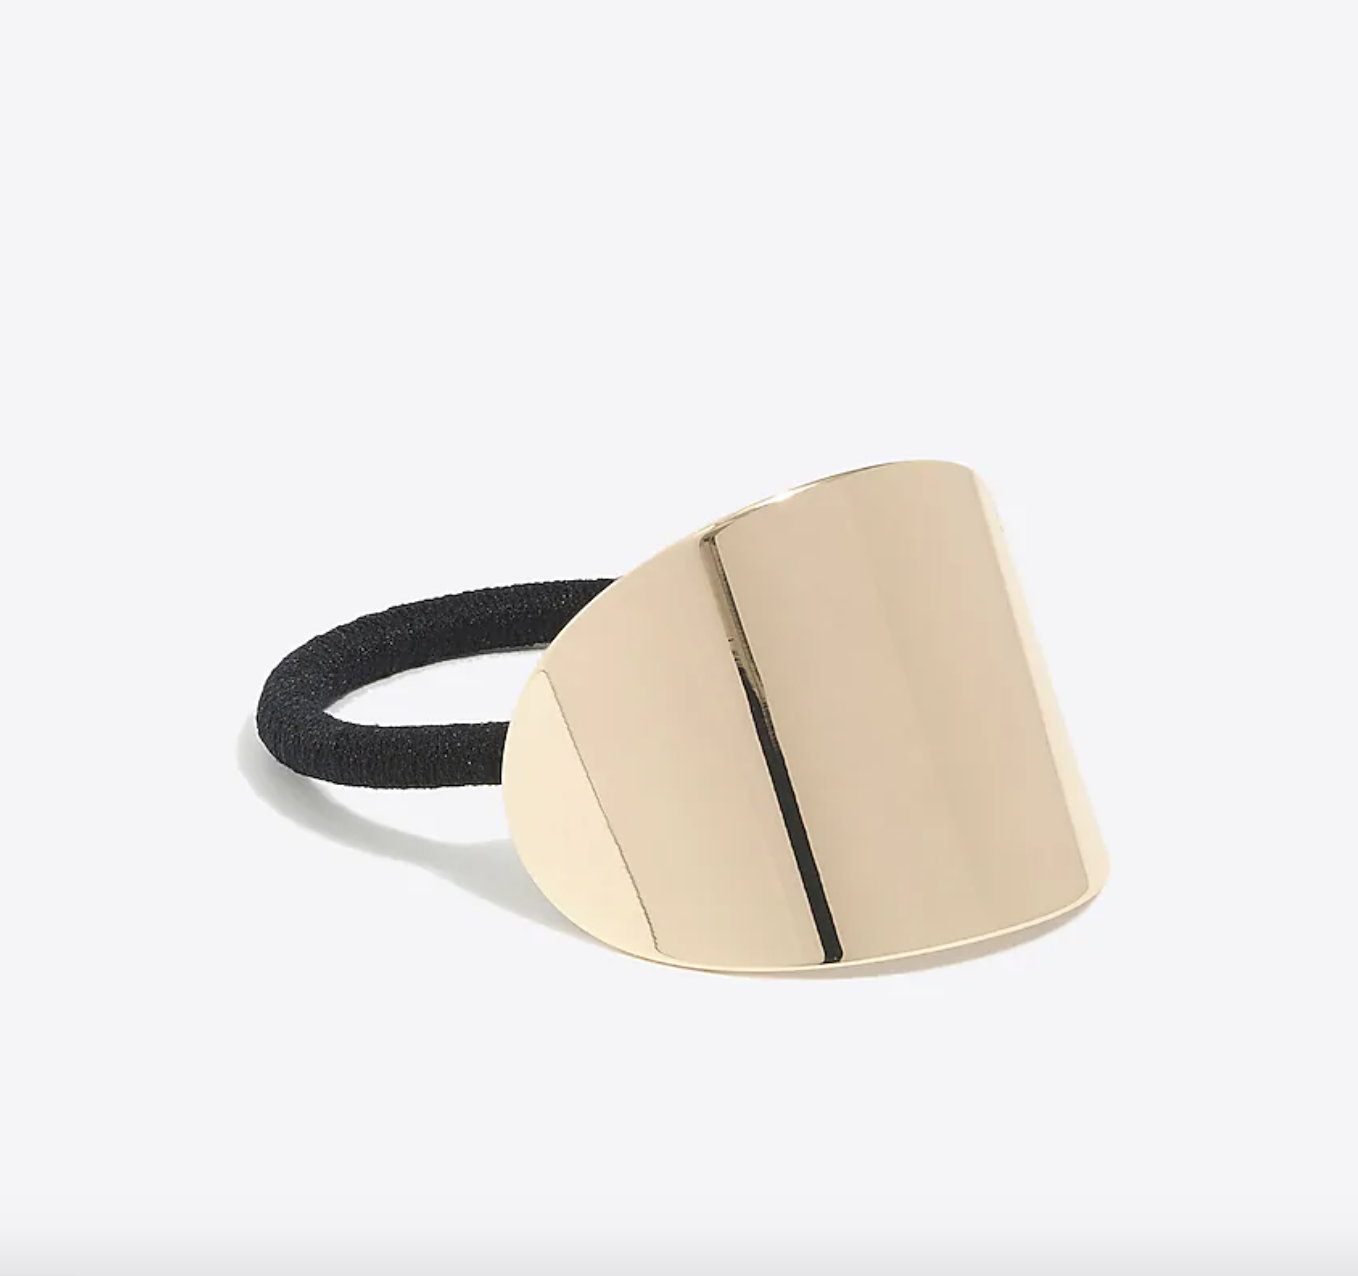 The elastic against a plain background with the gold metal part on show